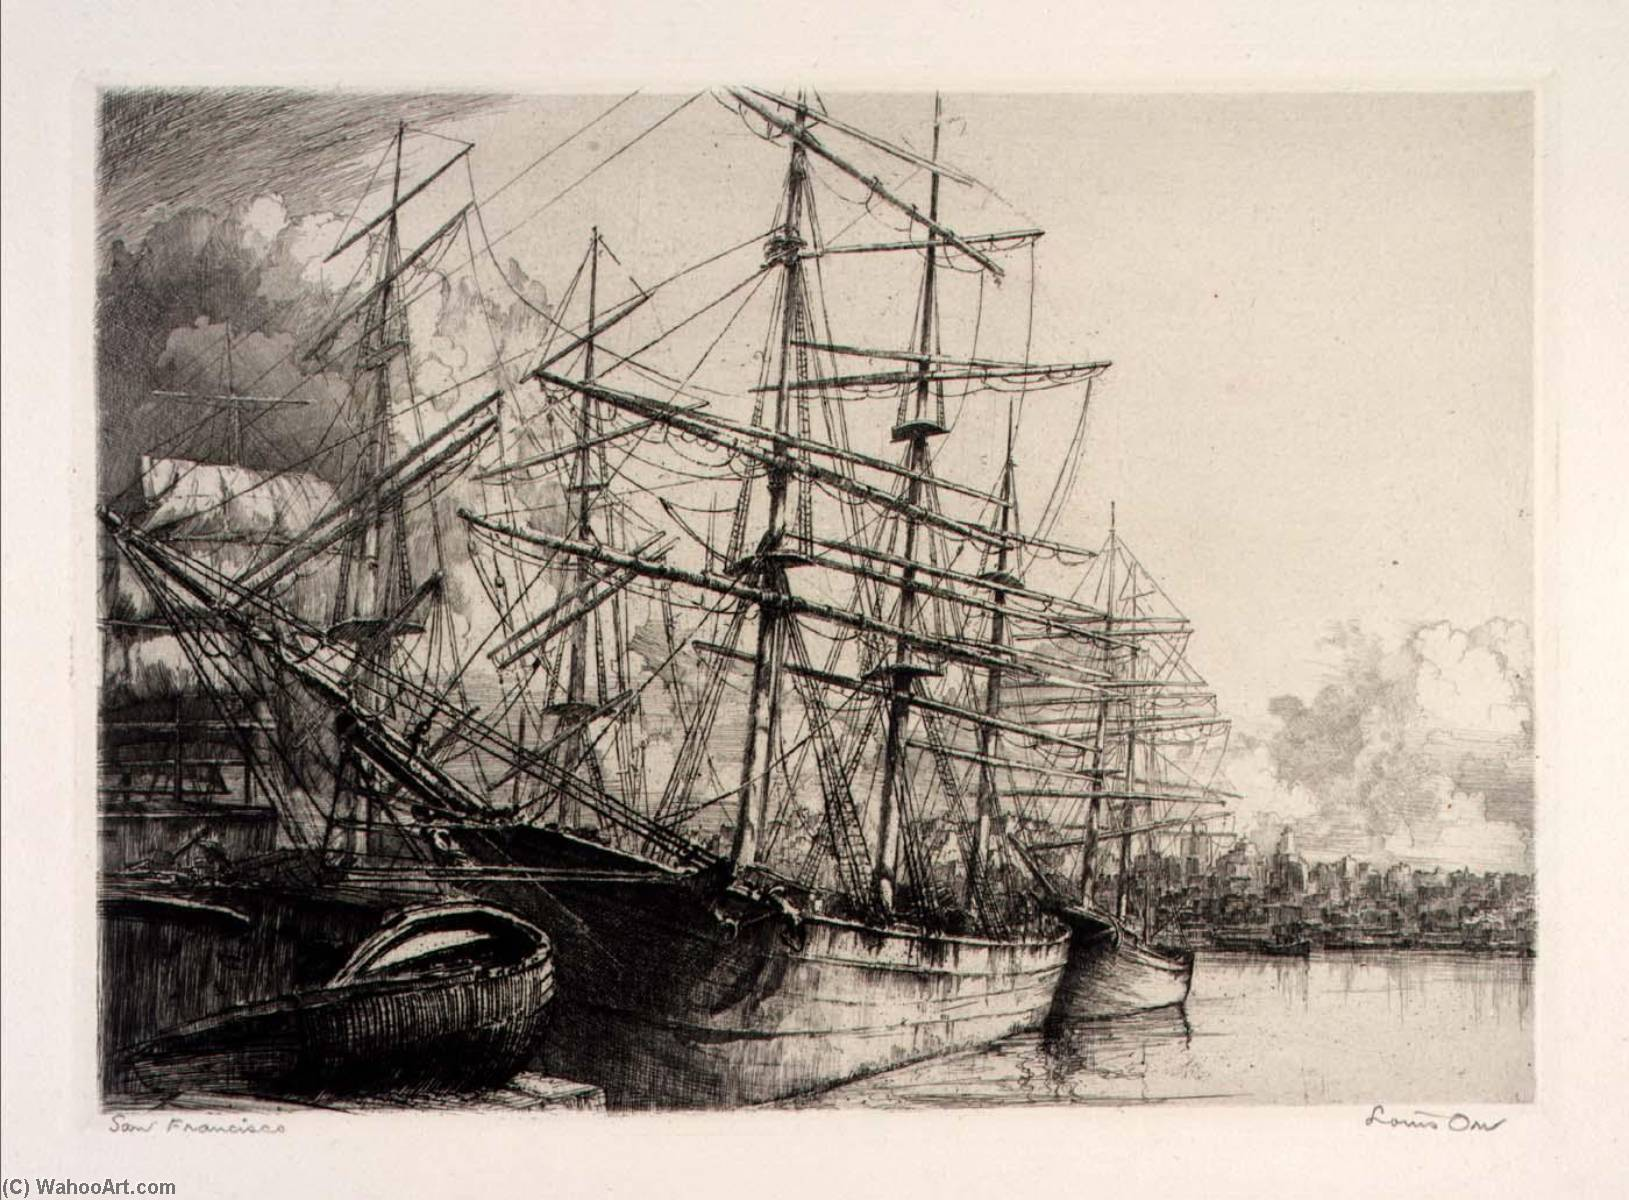 (Ports of America, portfolio) San Francisco, Etching by Louis Orr